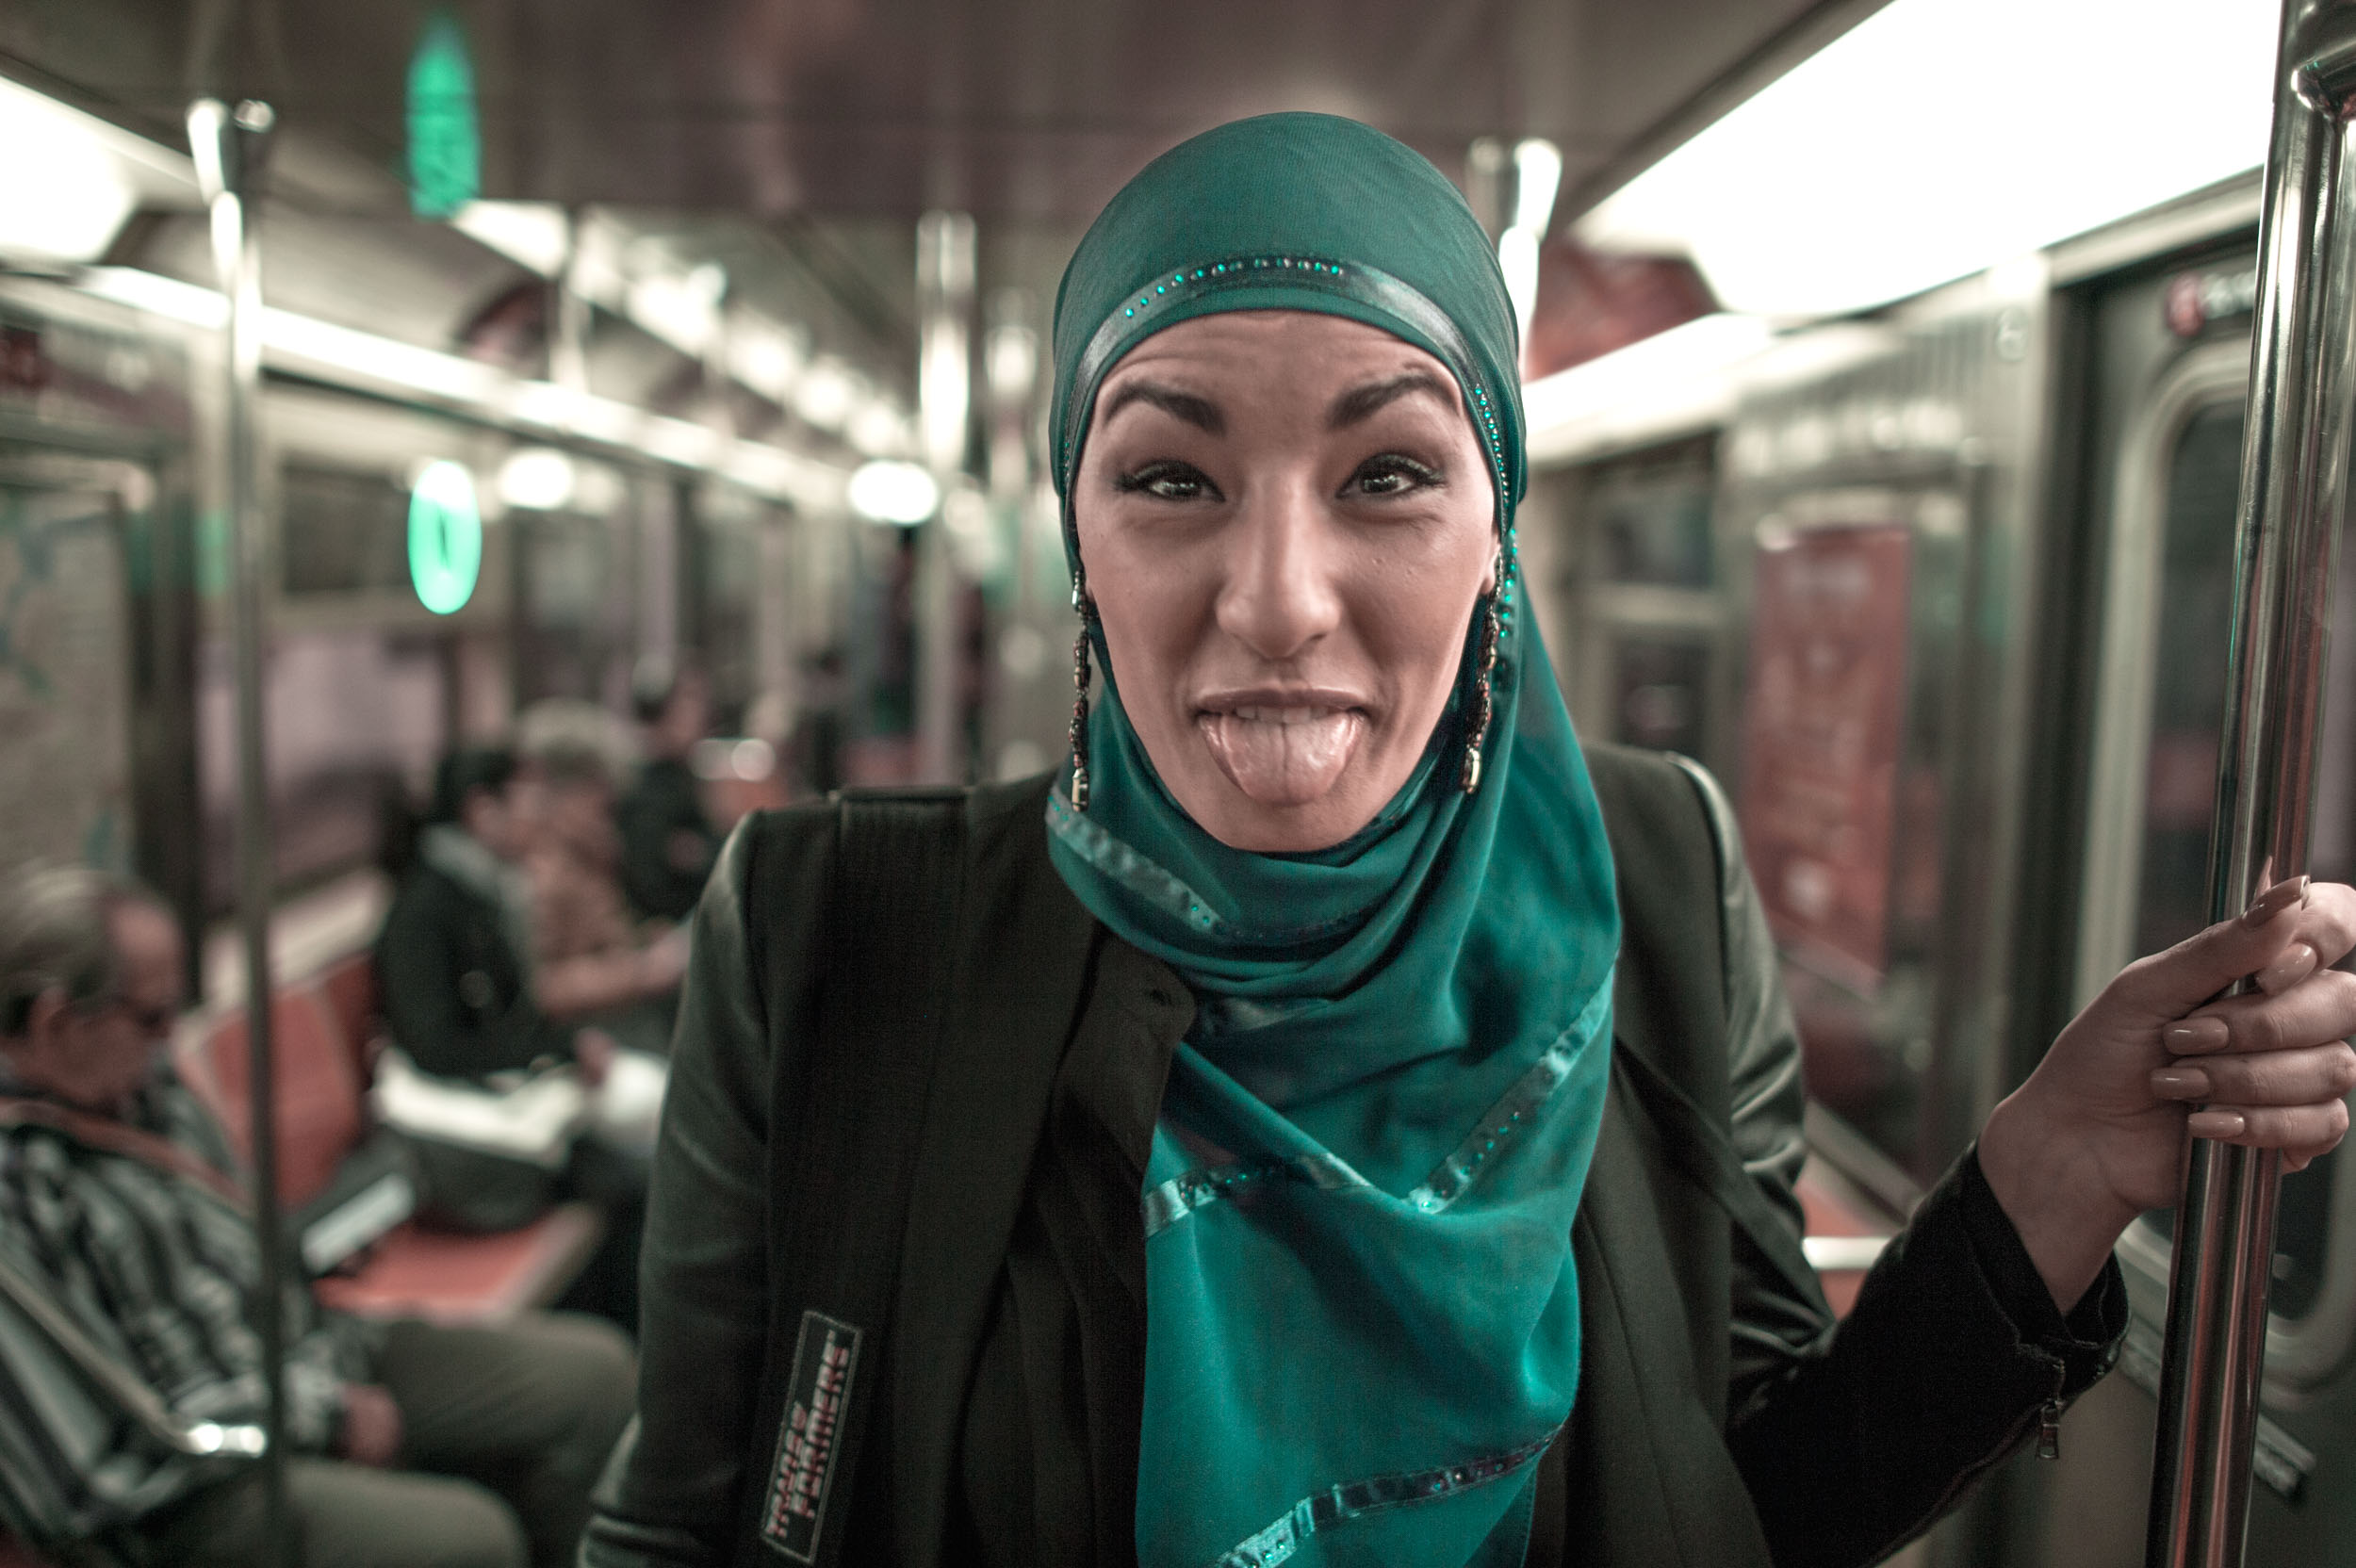 Eman B Ferdi , a Palestinian New Yorker on the Q-train.